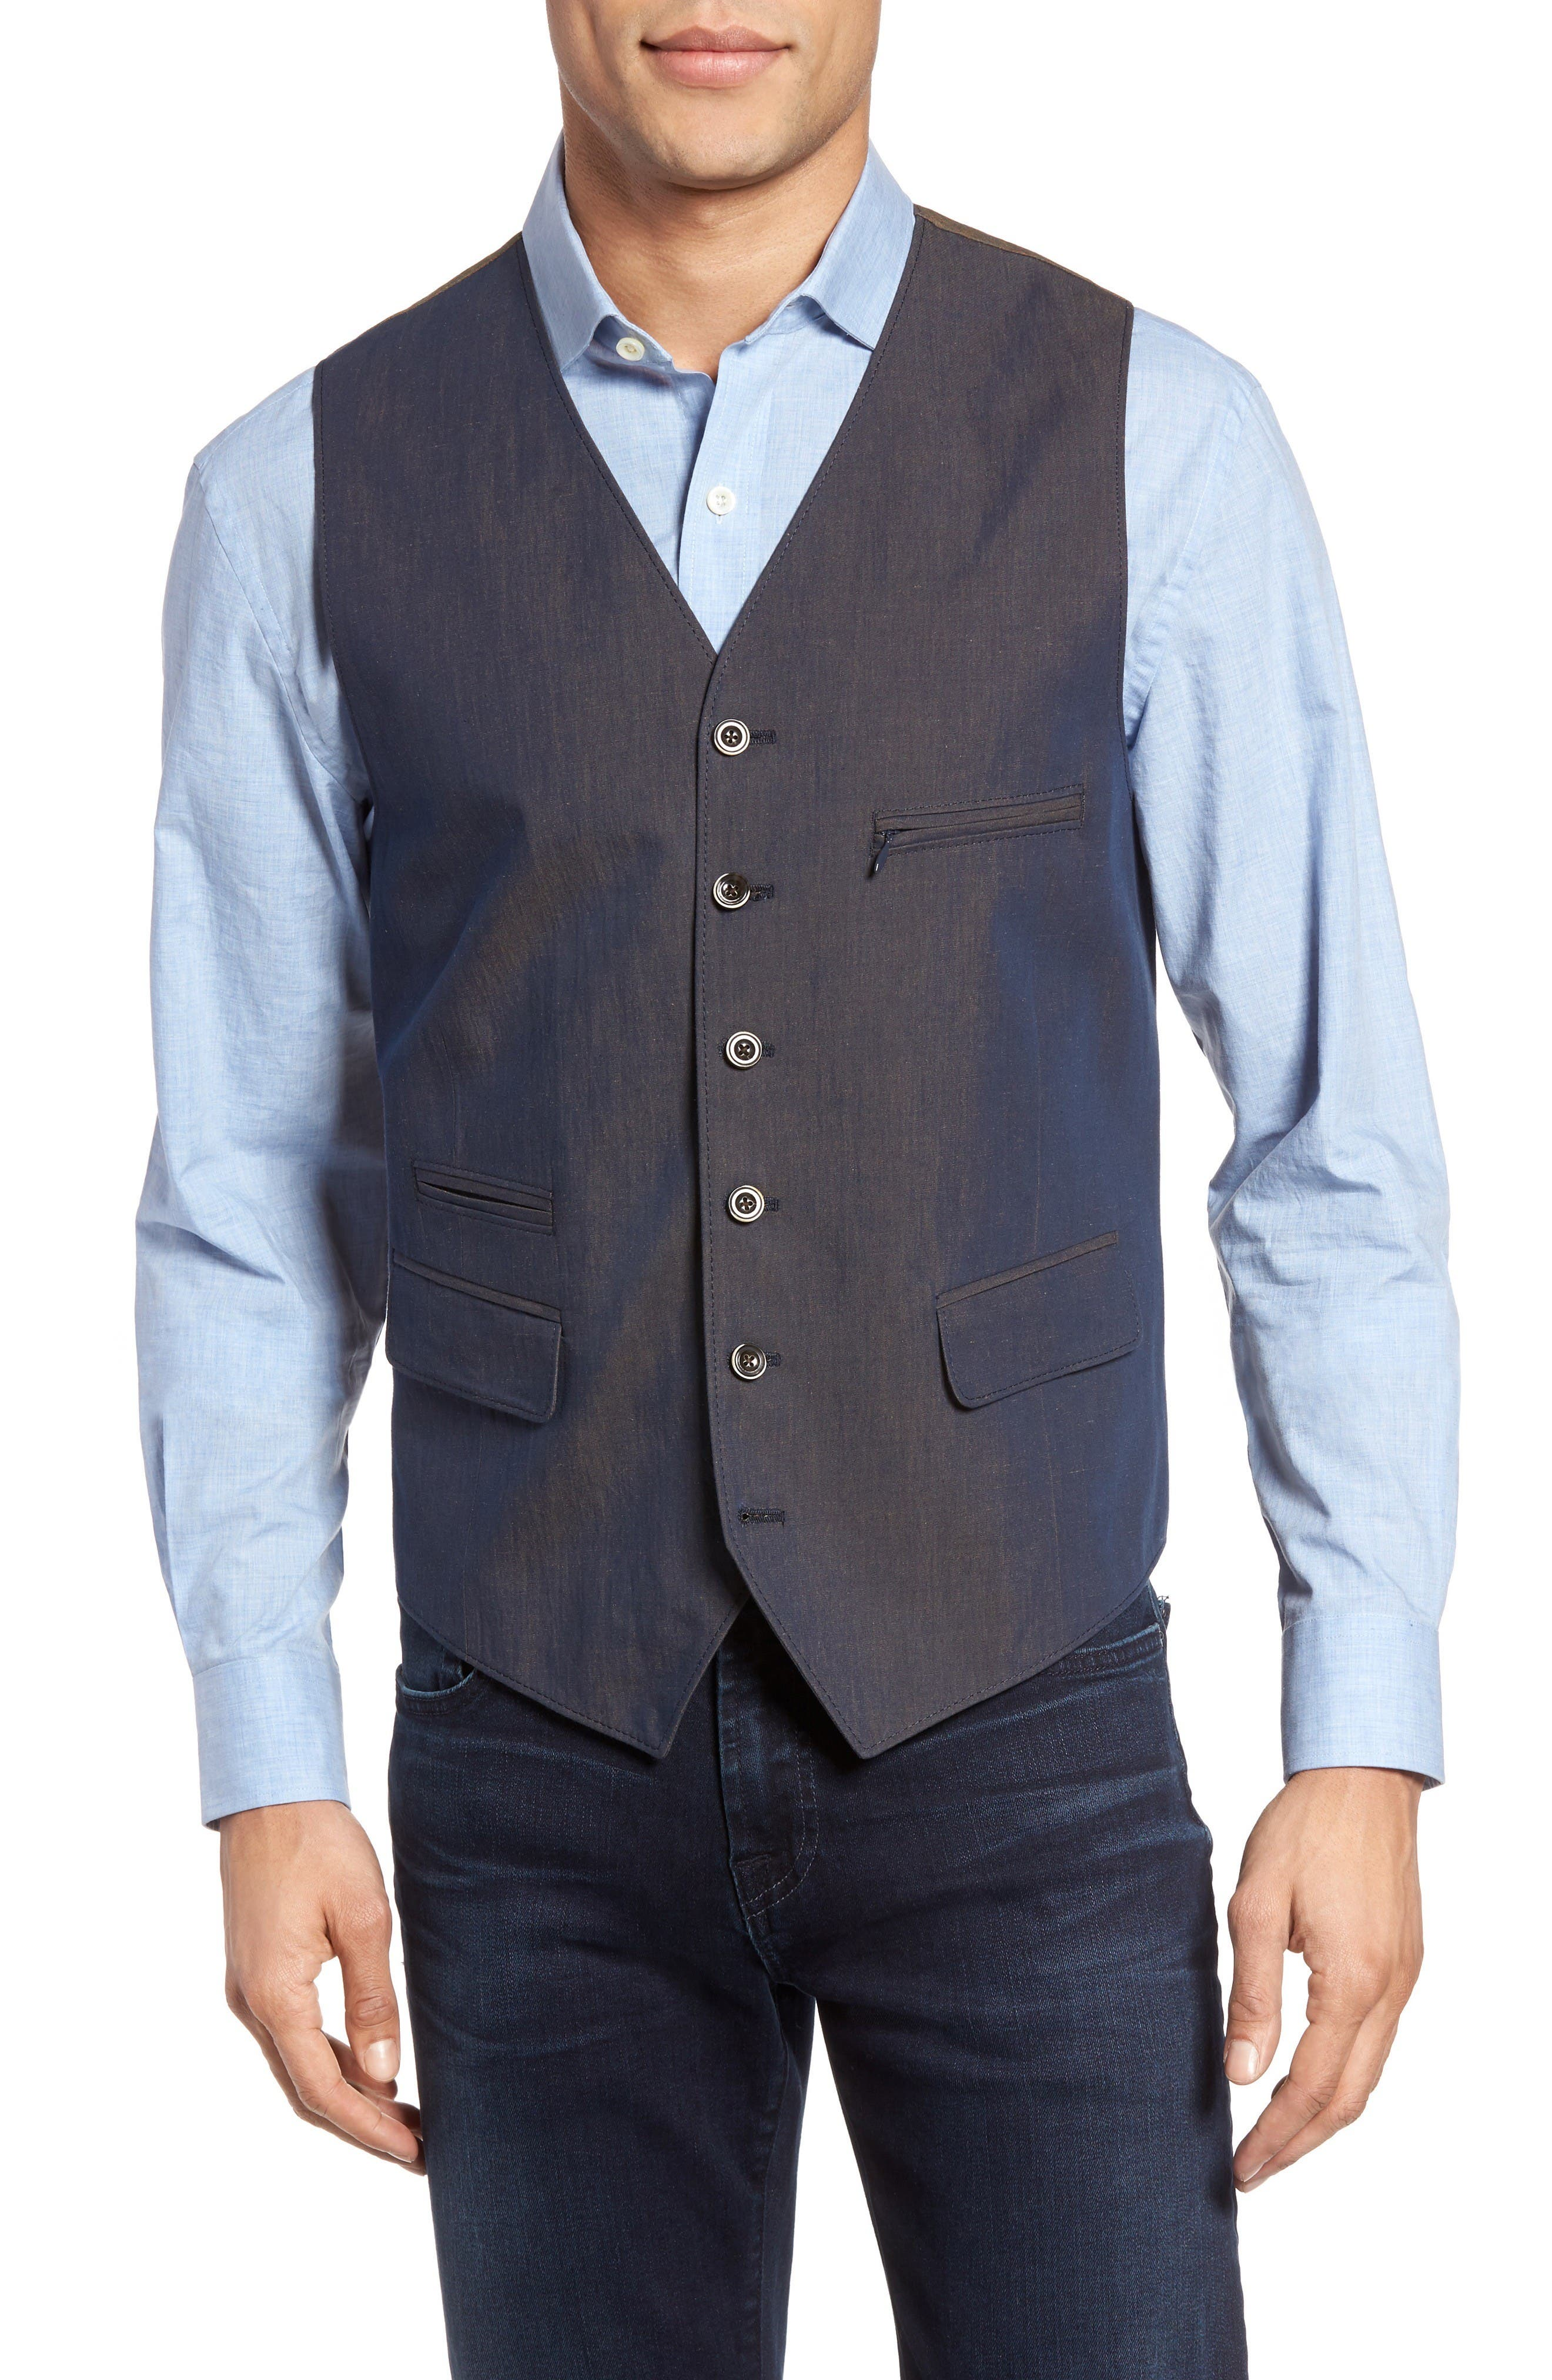 Hootie Classic Fit Linen & Cotton Vest,                         Main,                         color, Blue